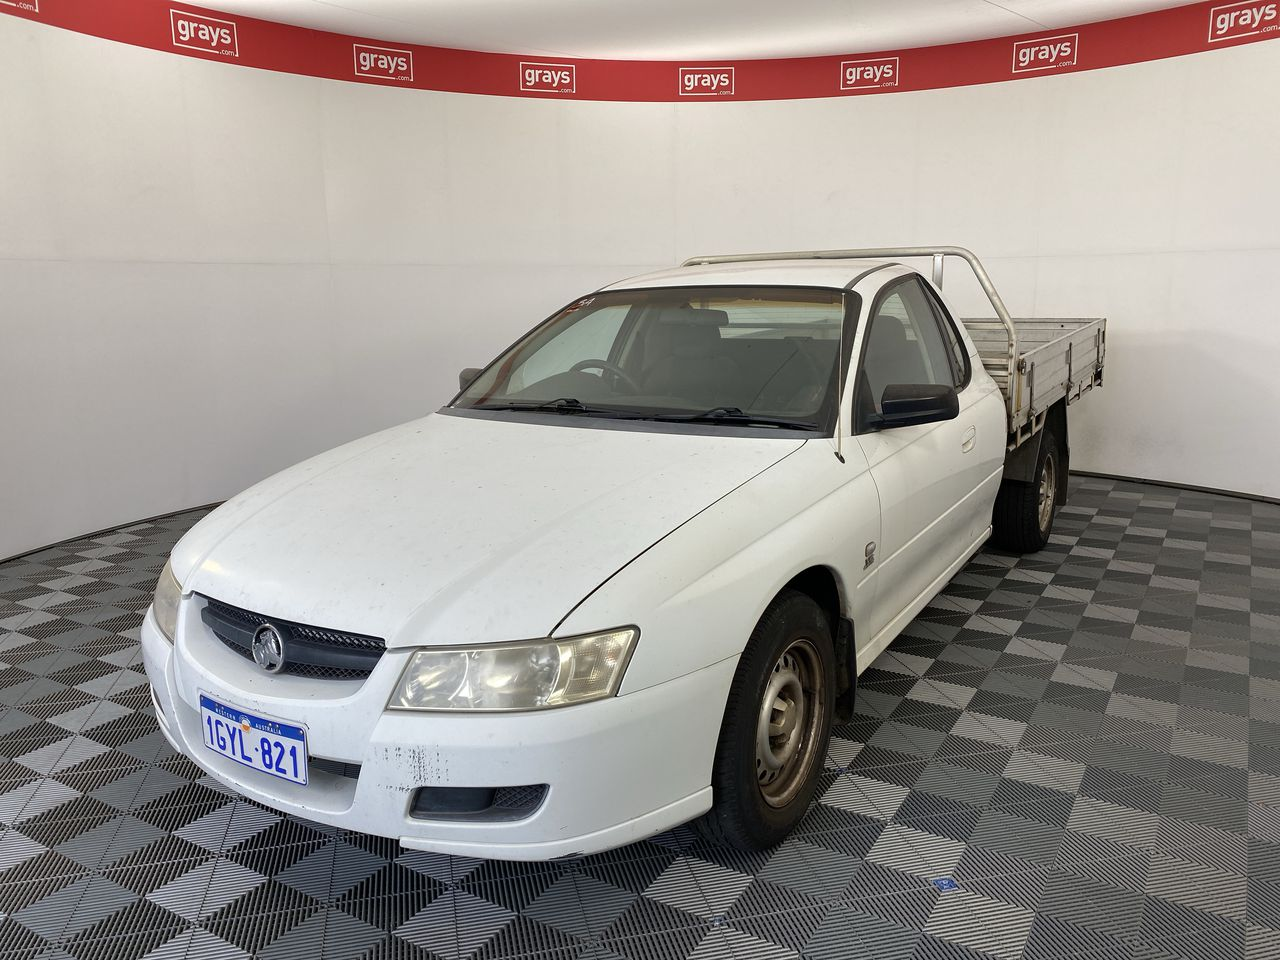 2004 Holden Commodore One Tonner VZ Automatic Cab Chassis